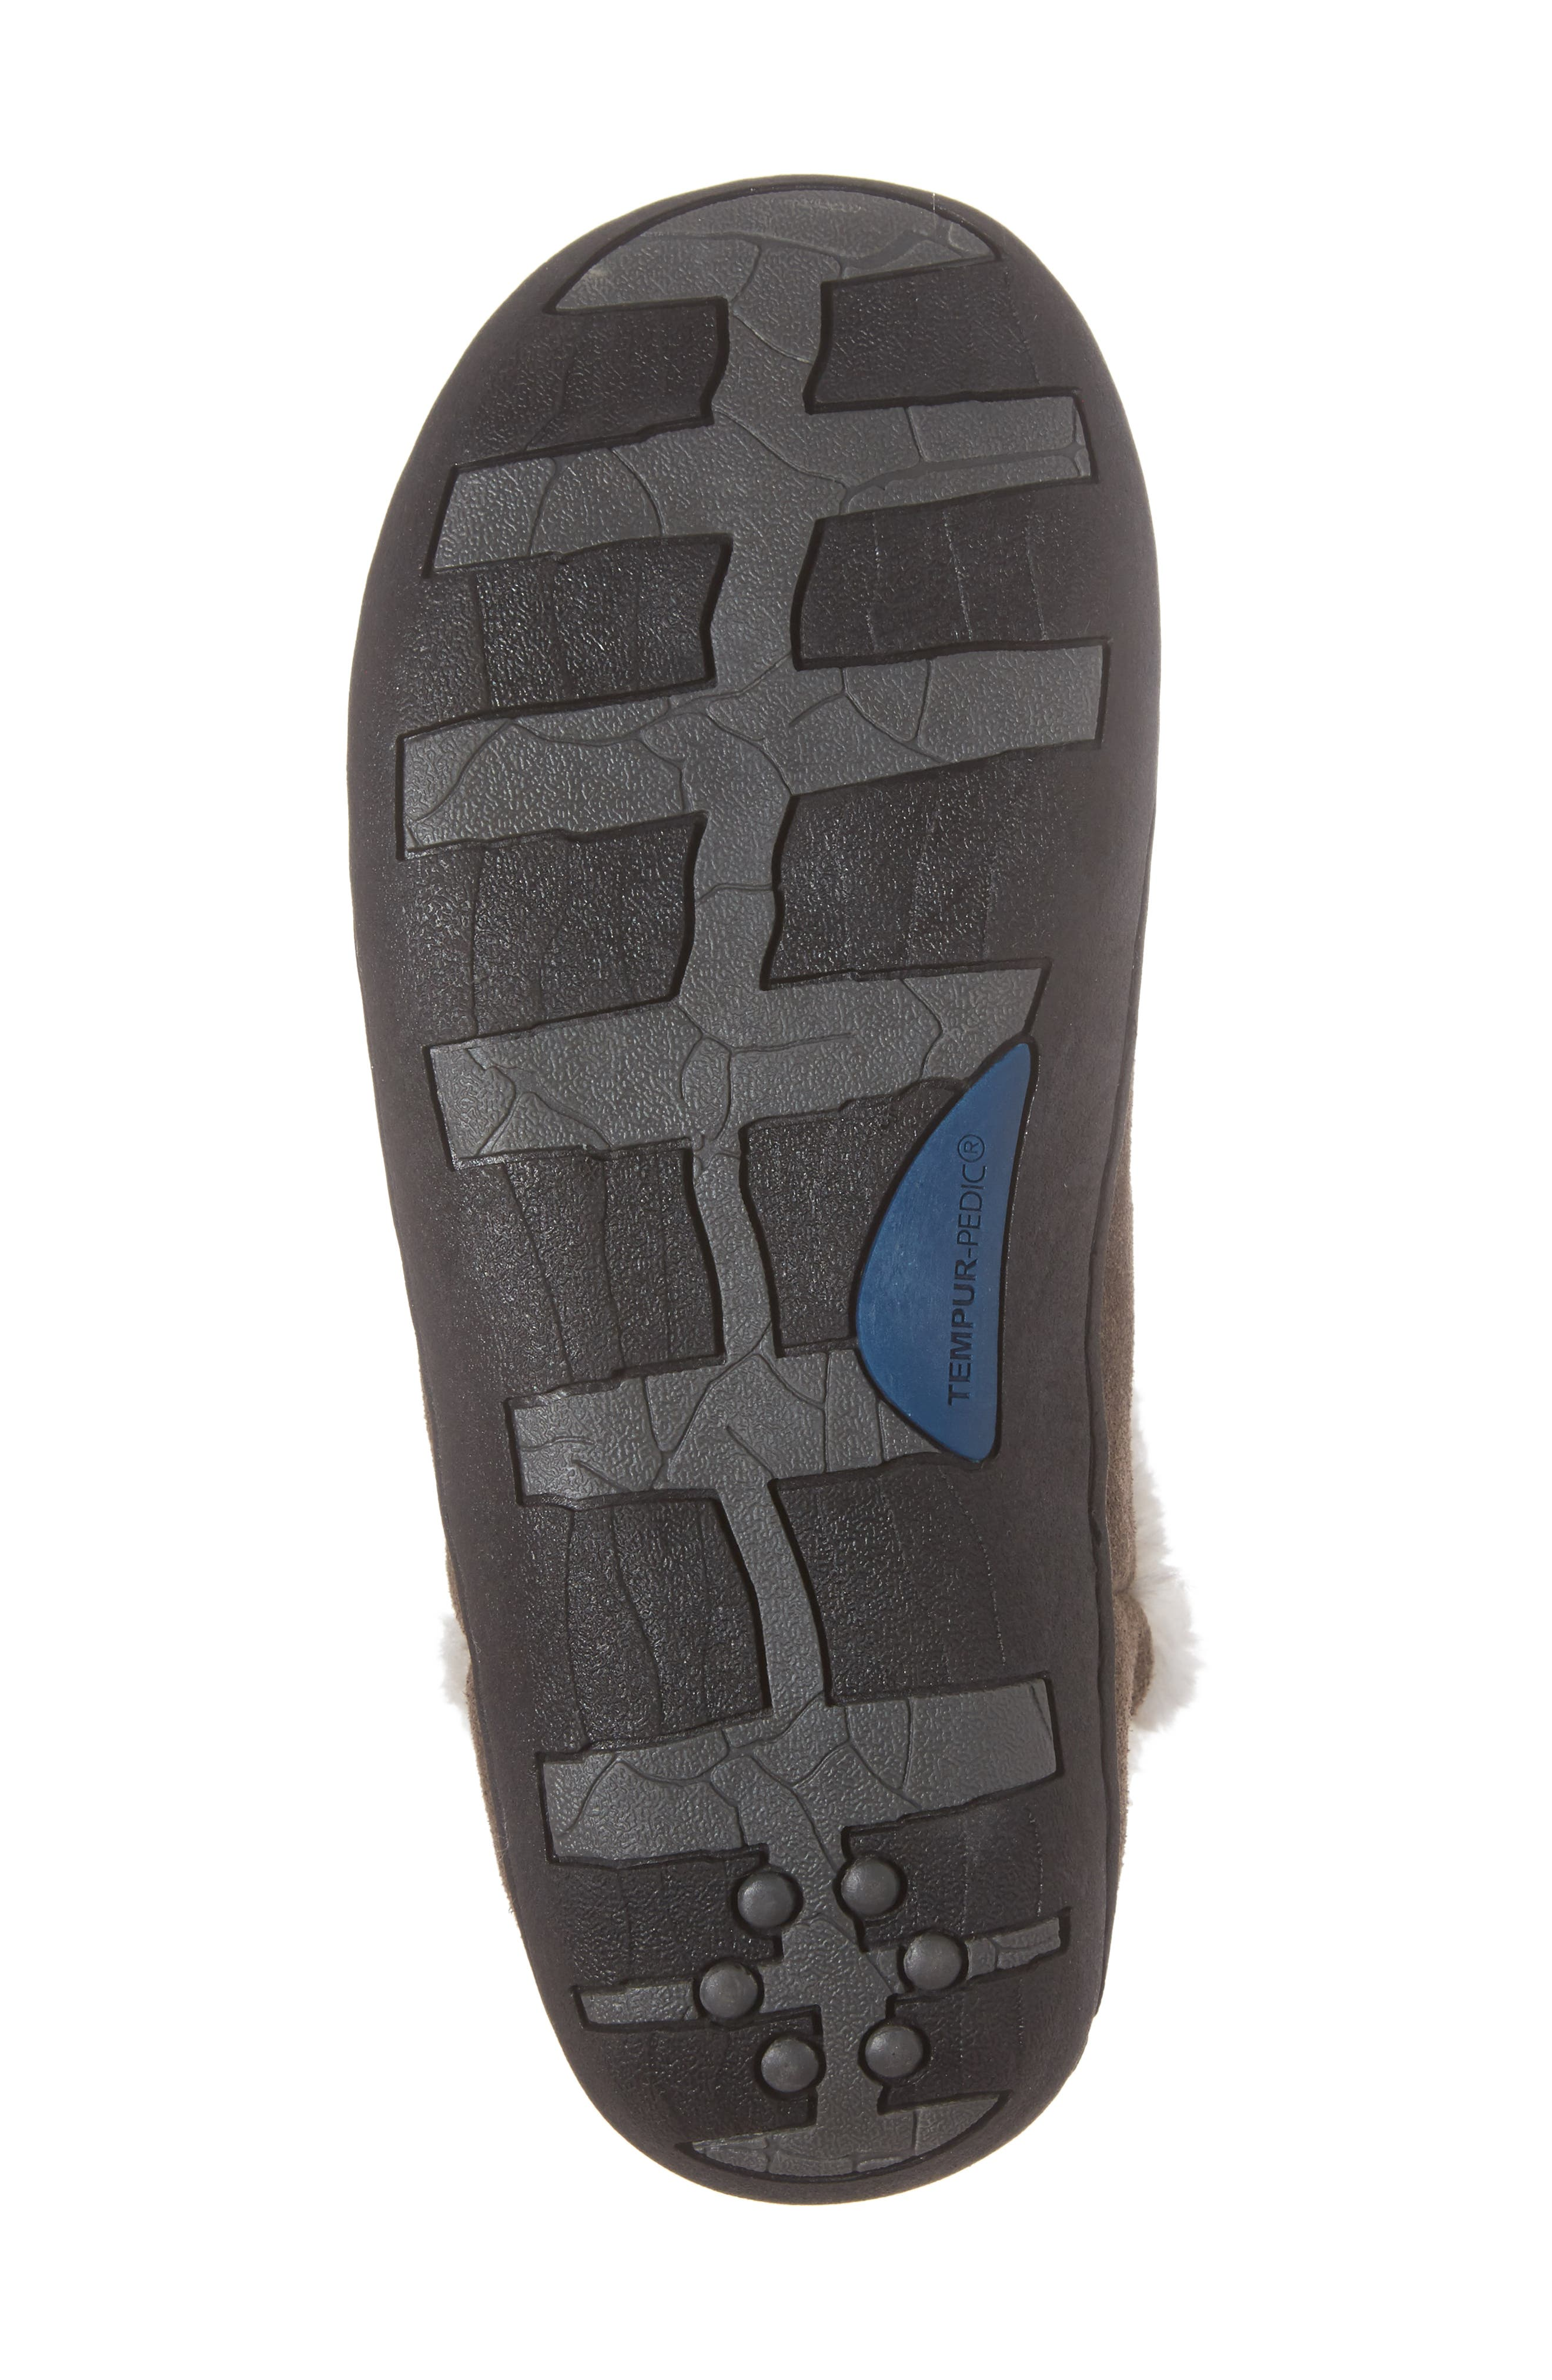 Vallery Bootie Slipper,                             Alternate thumbnail 6, color,                             GRAY SUEDE